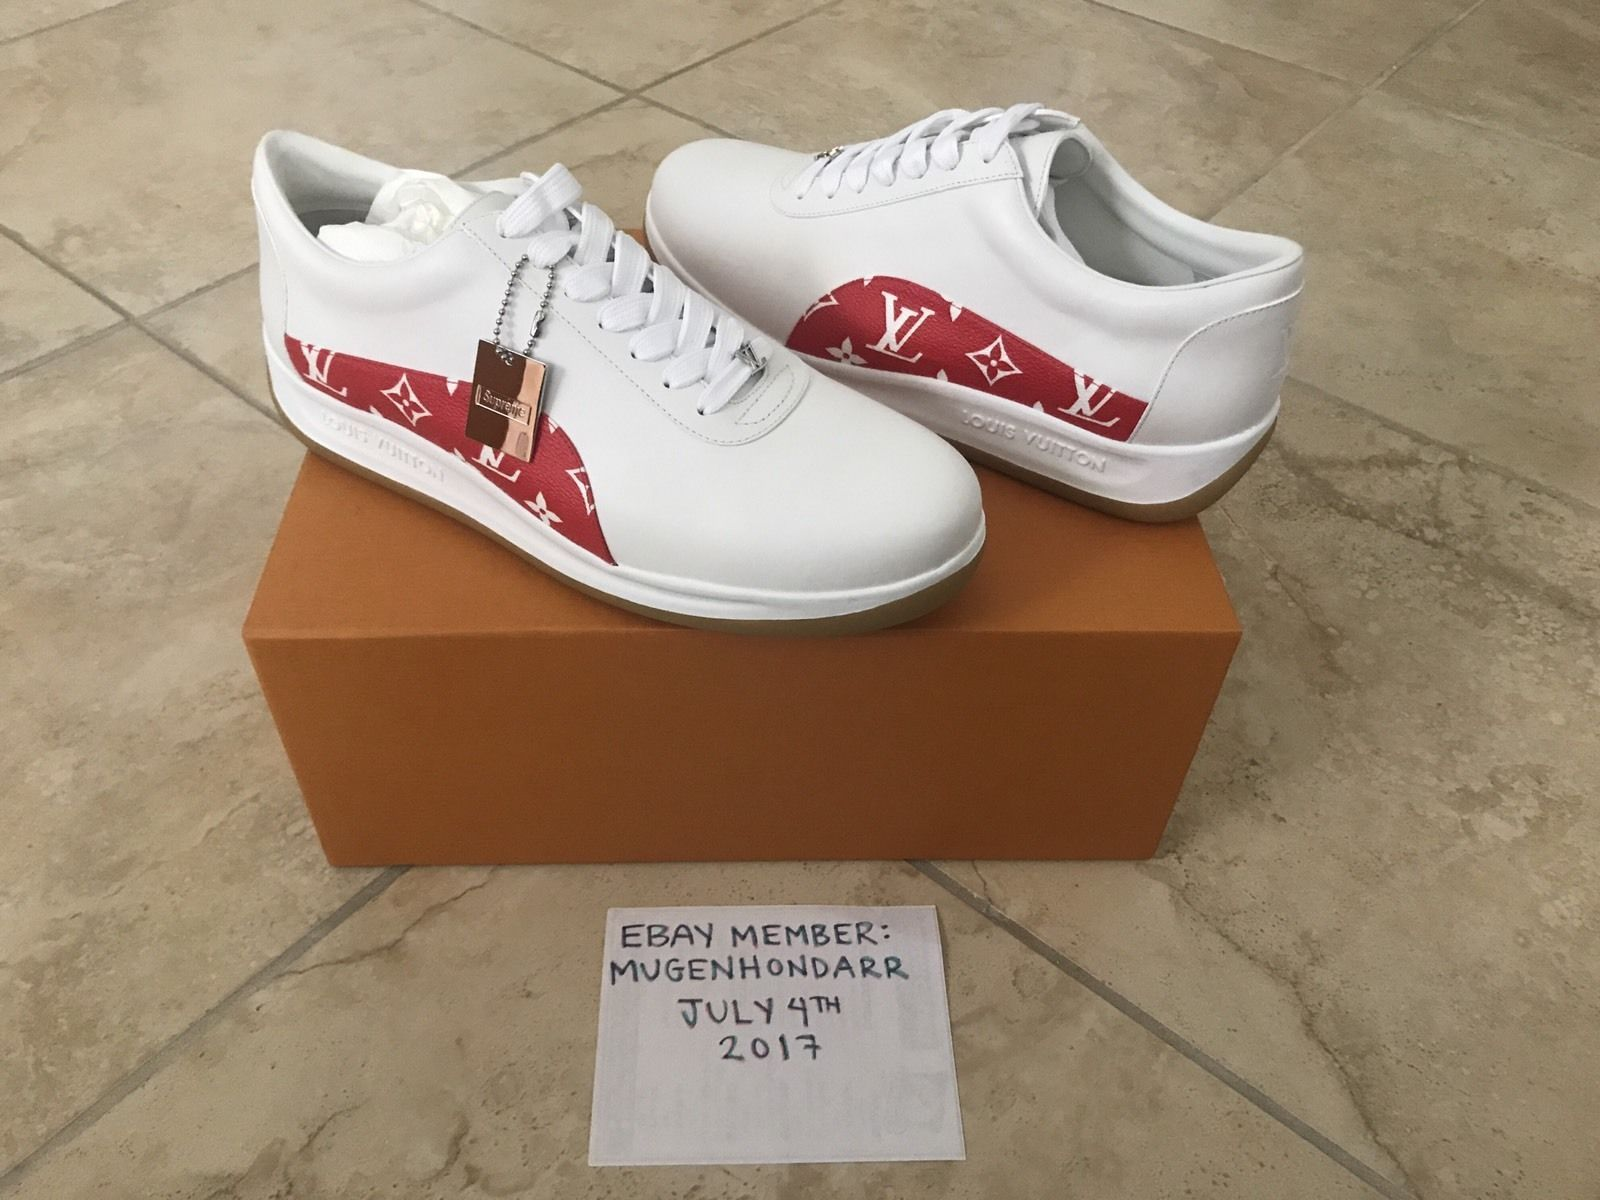 92fb8e608 Louis Vuitton x Supreme Monogram Red White Sport Sneakers Shoes LV Size 9  US 10 #sneakers #shoes #size #sport #white #vuitton #supreme #monogram  #louis